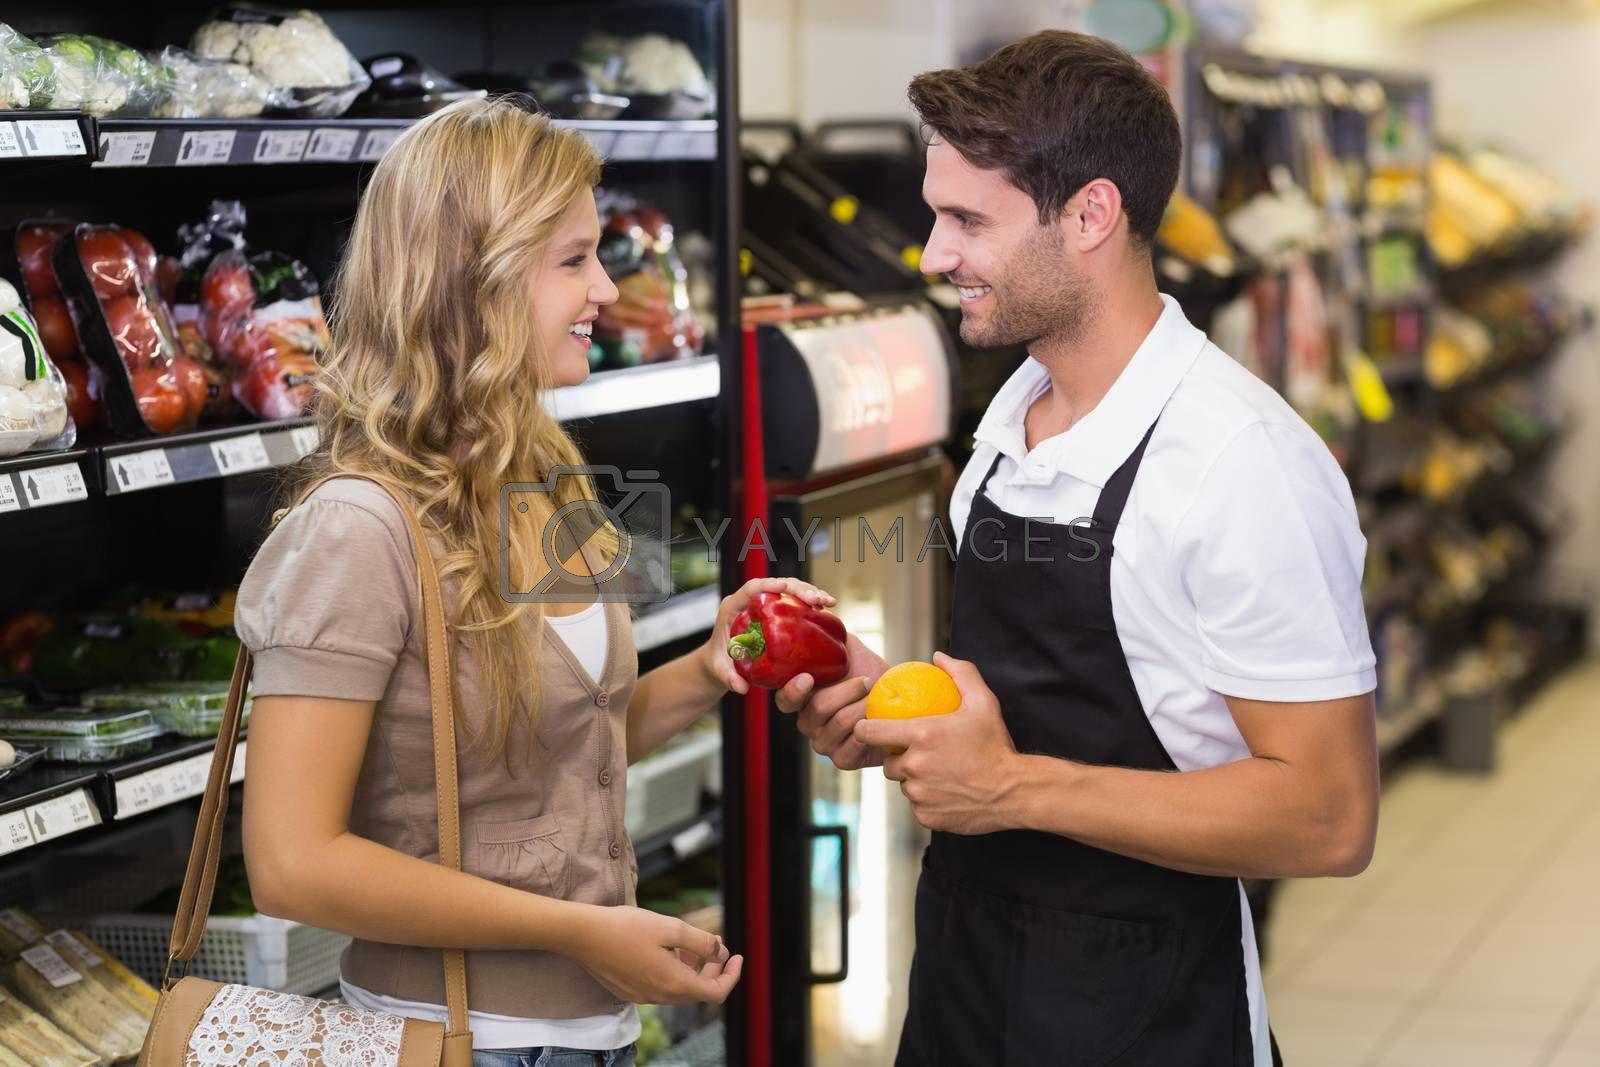 Royalty free image of Smiling blonde woman buying a vegetables  by Wavebreakmedia